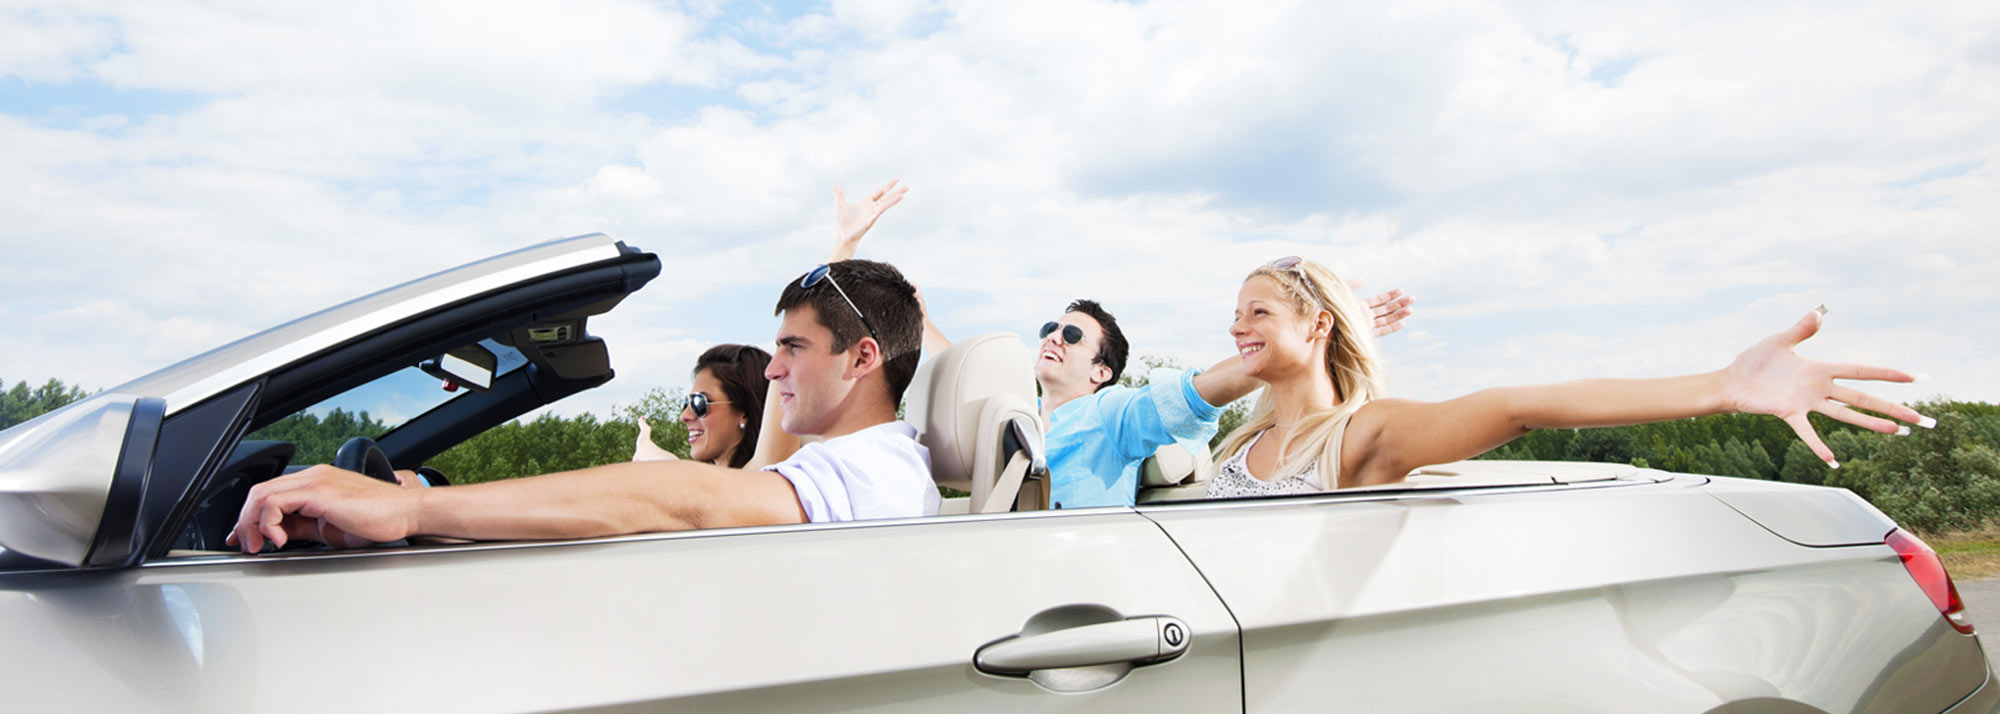 Cheap Auto Car Insurance In Florida Ace Underwriting Group